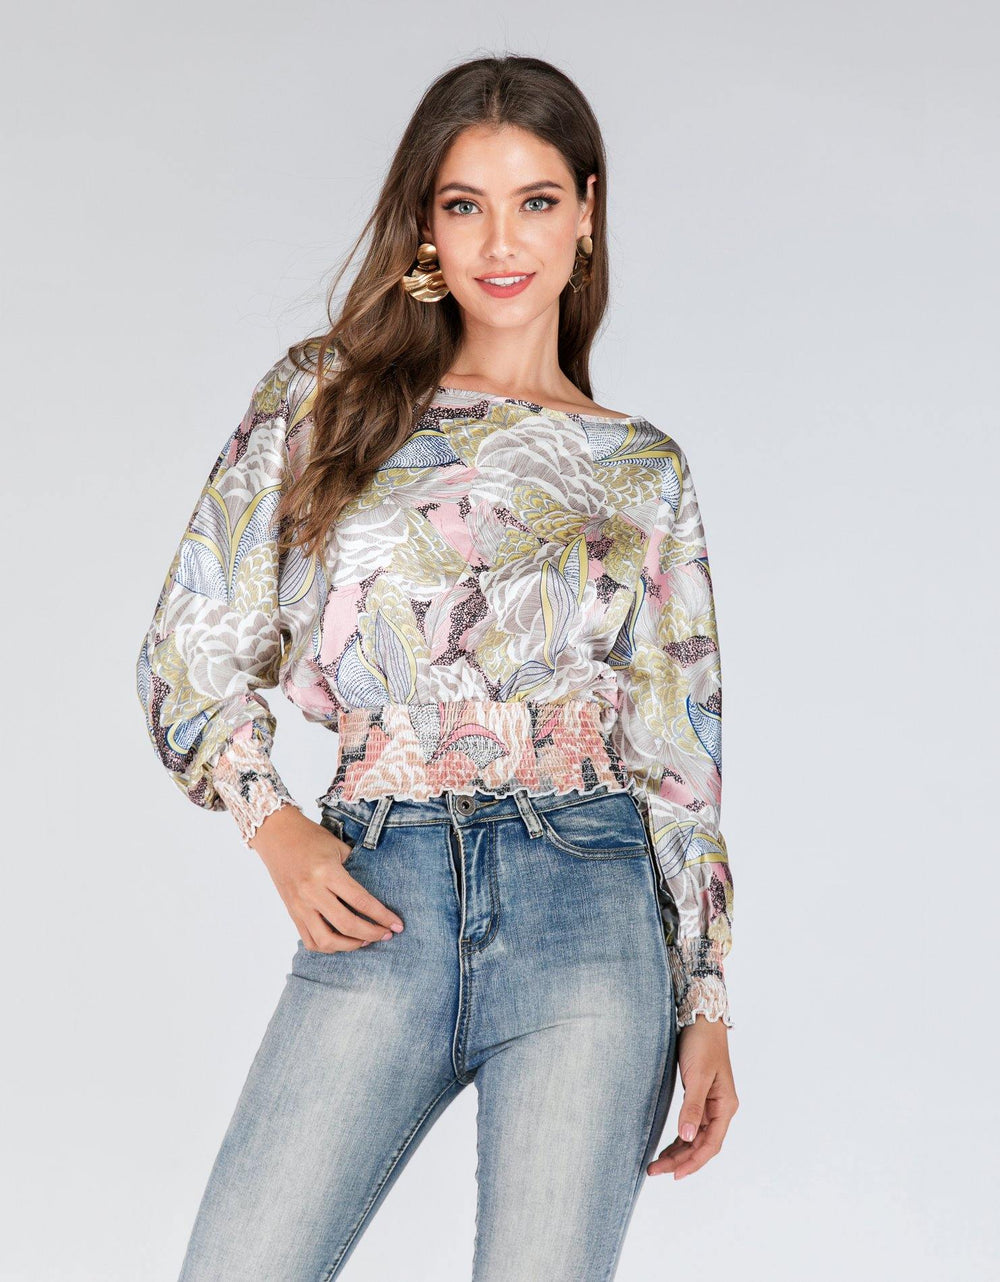 Long Sleeved Floral Blouse - Brandsea UK